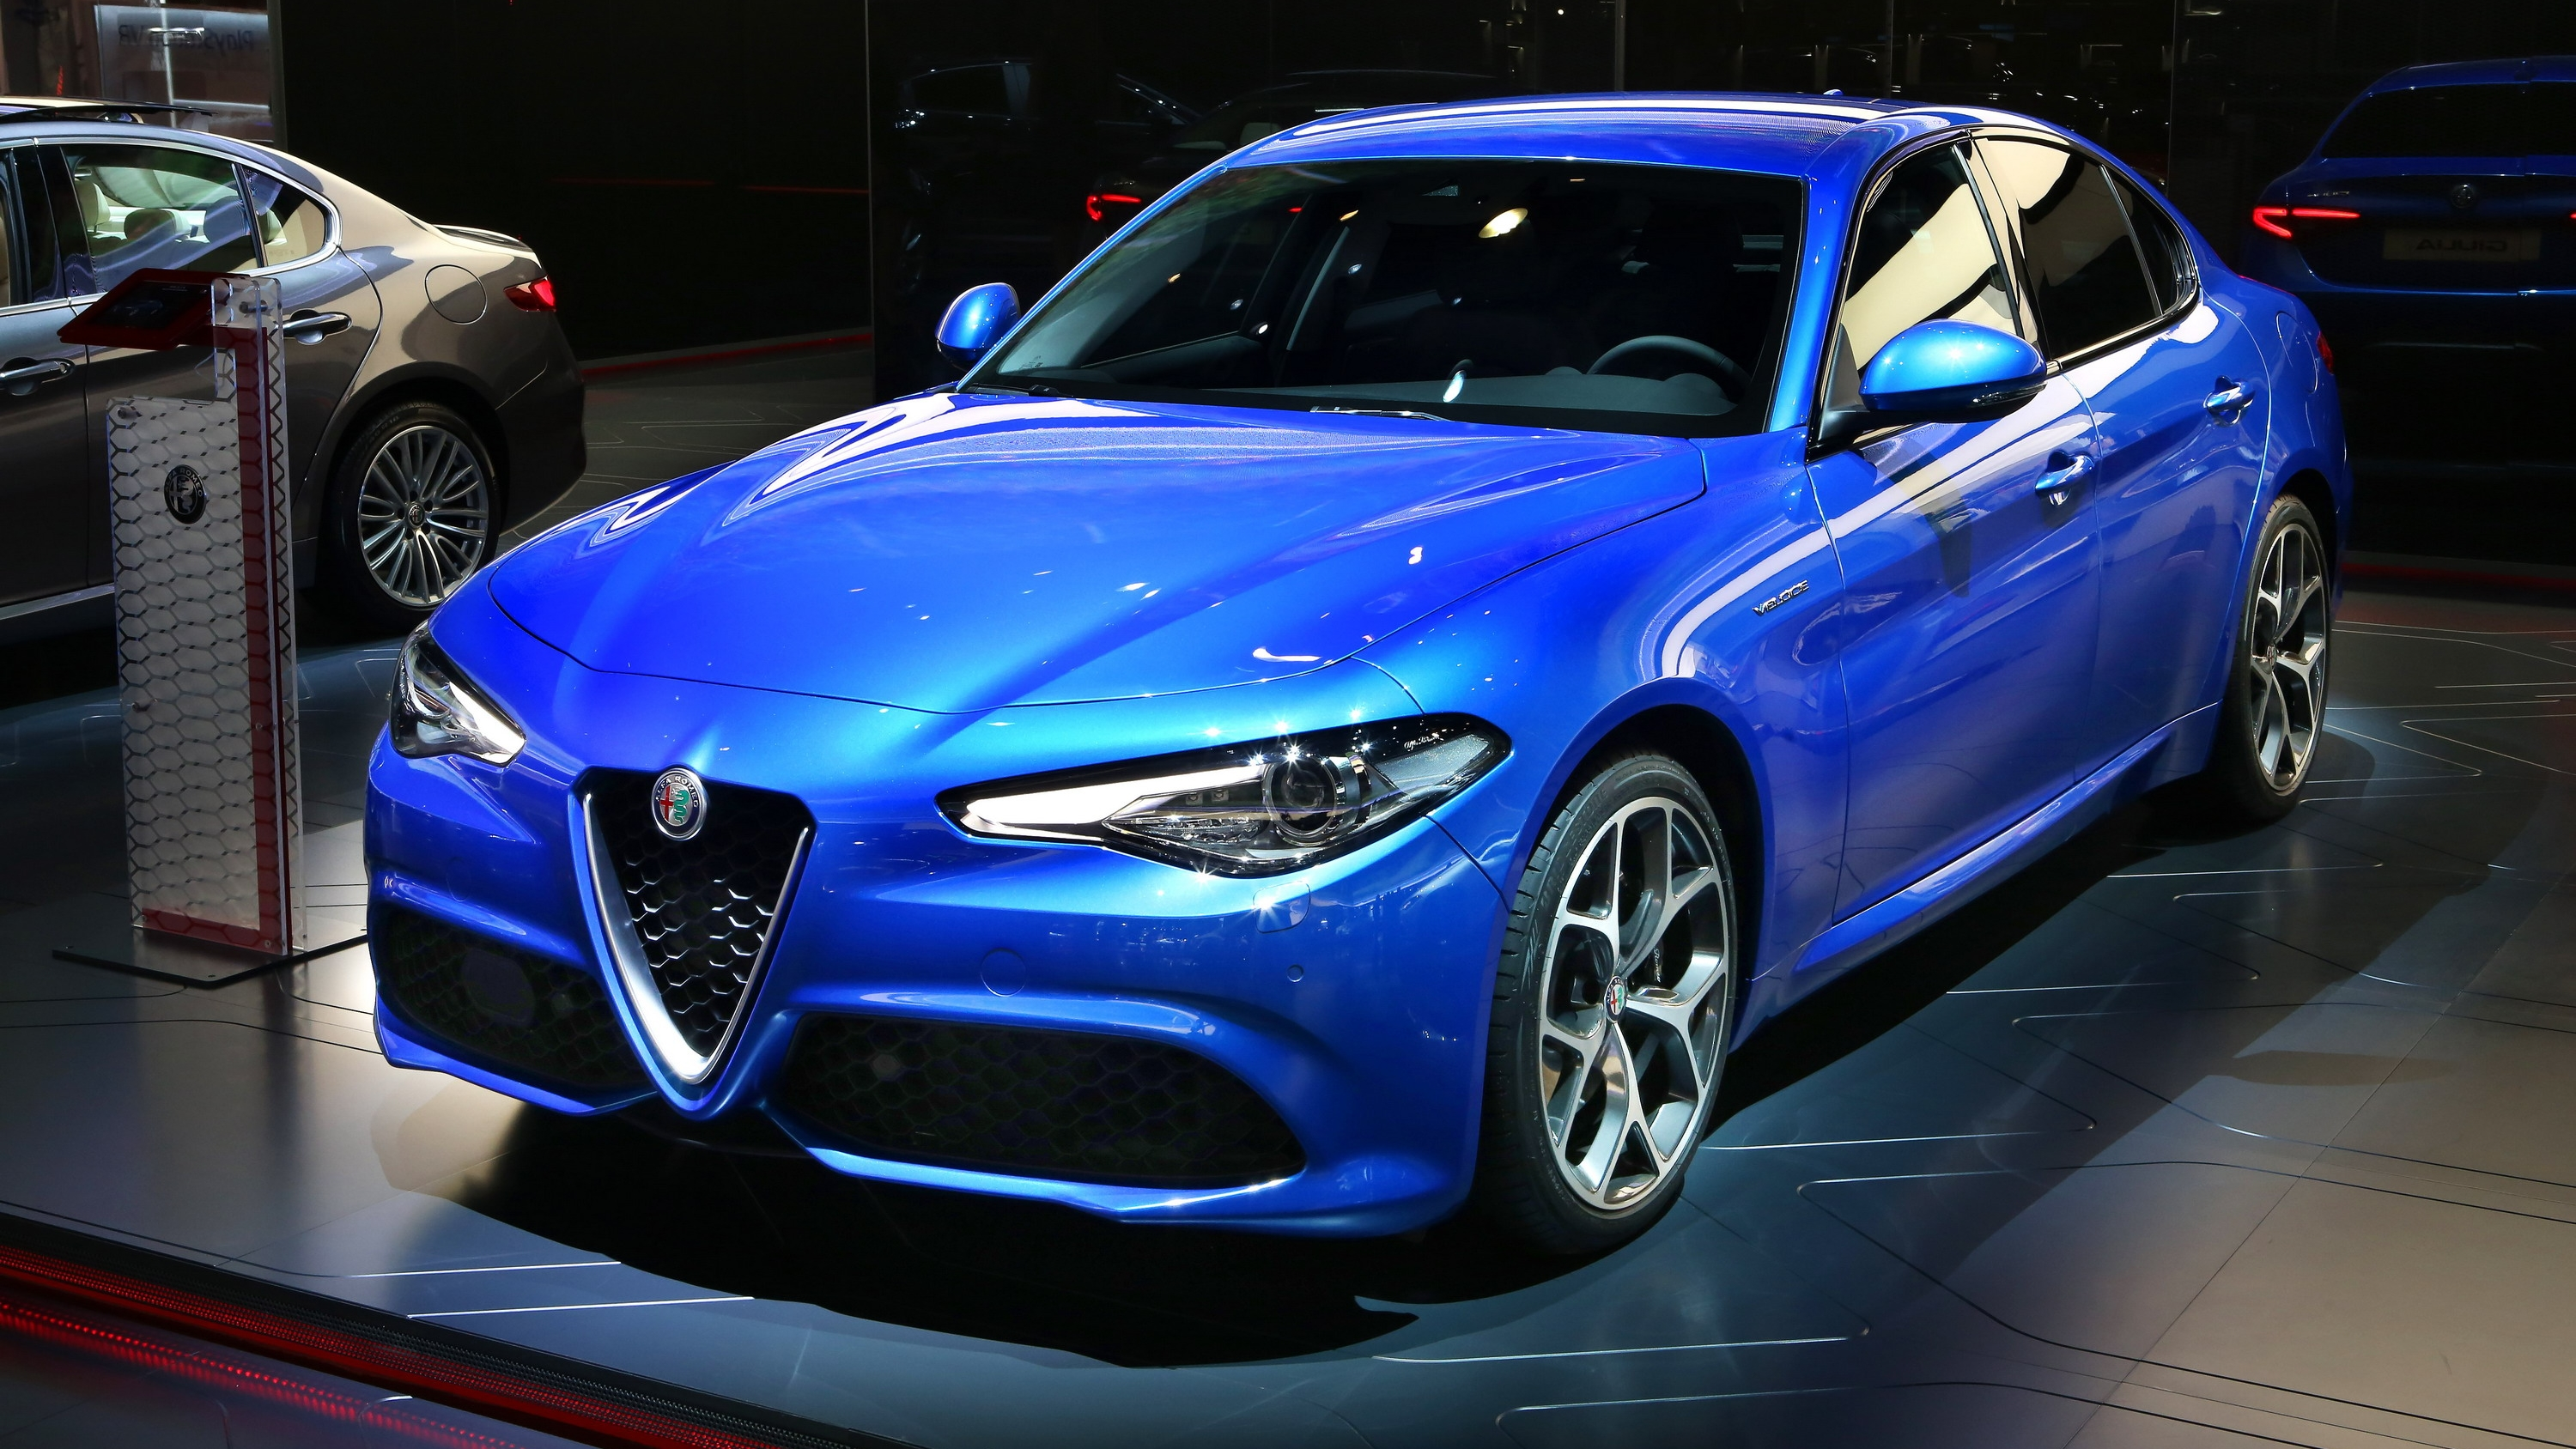 alfa romeo giulia veloce slots nicely between the base and quadrifoglio variants news top speed. Black Bedroom Furniture Sets. Home Design Ideas